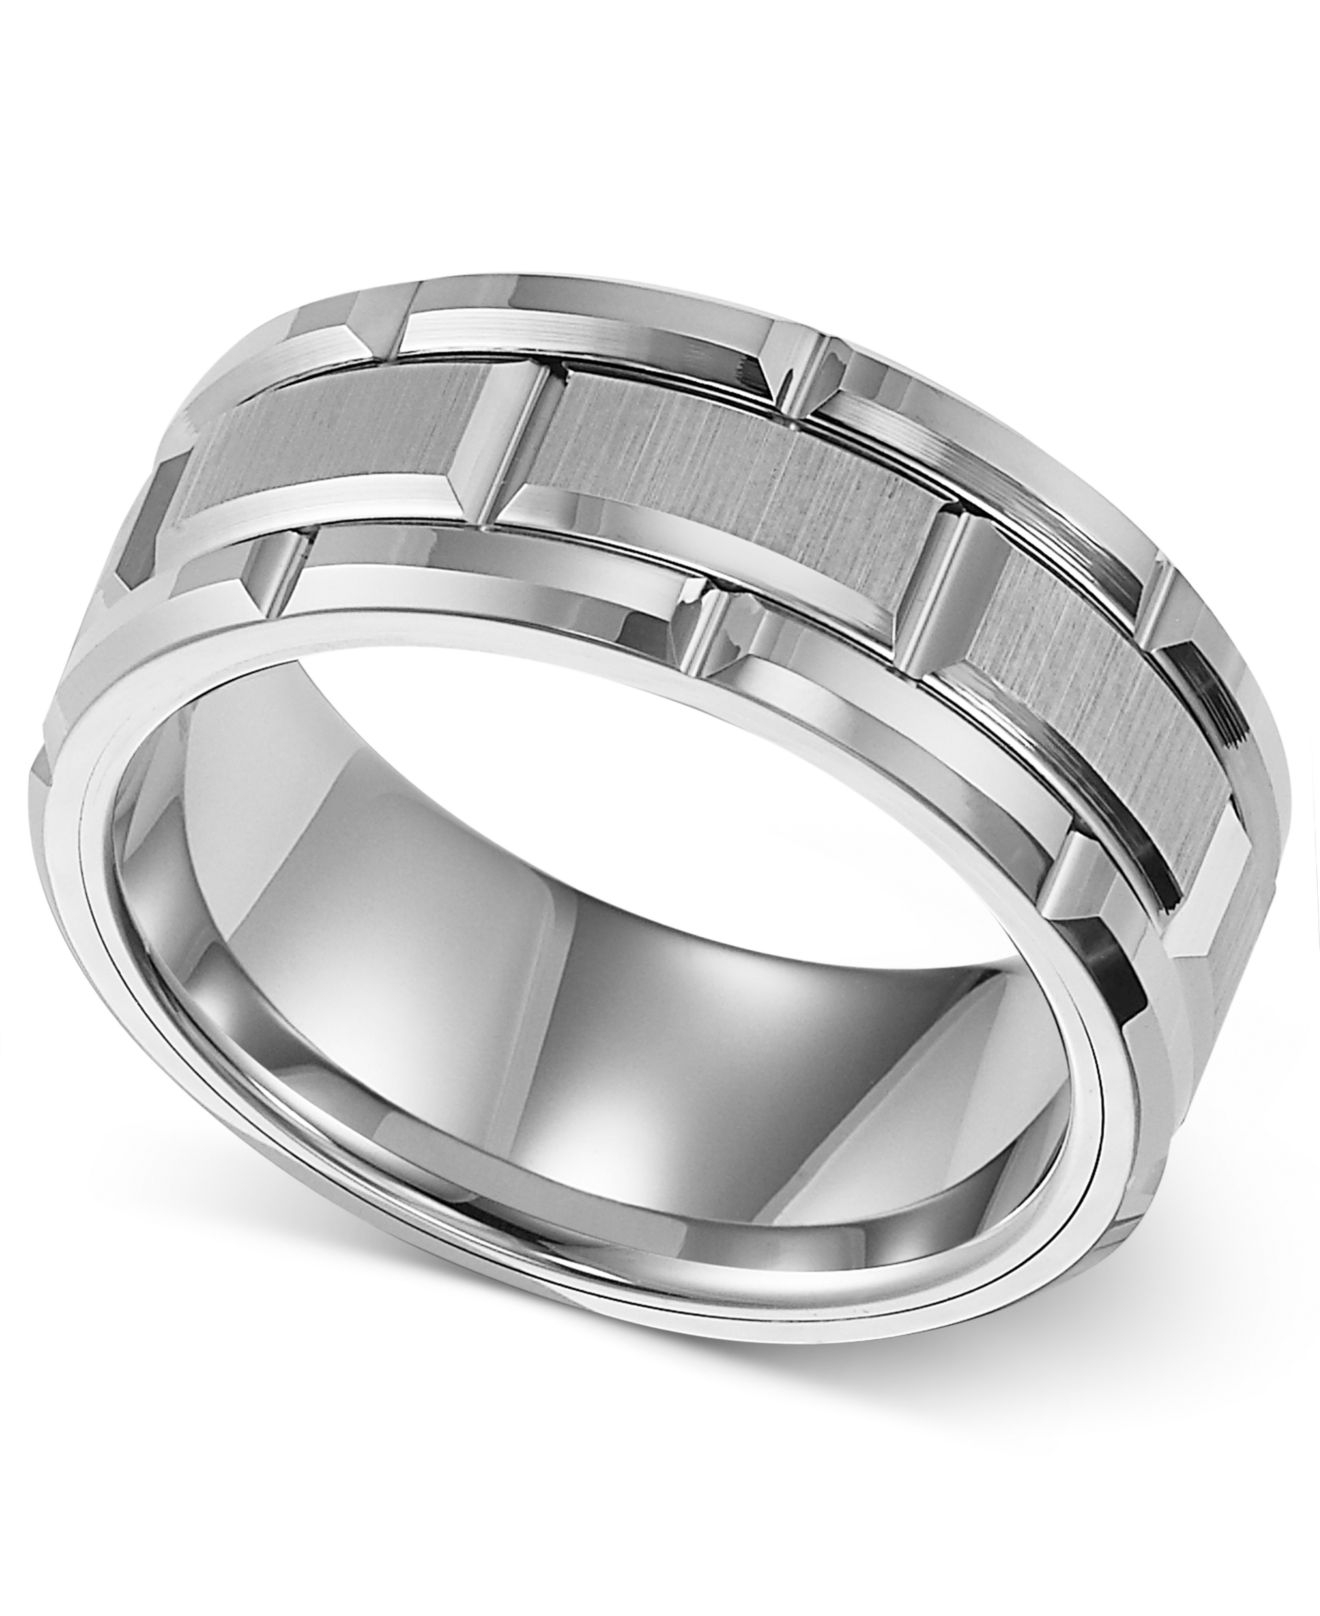 Triton 8mm White Tungsten Wedding Band In White For Men  Lyst. Sets Wedding Rings. Oval Shaped Engagement Rings. Girl Latest Model Rings. 0.1 Carat Wedding Rings. Rate Rings. Plant Wedding Rings. Orca Rings. Small Engagement Rings